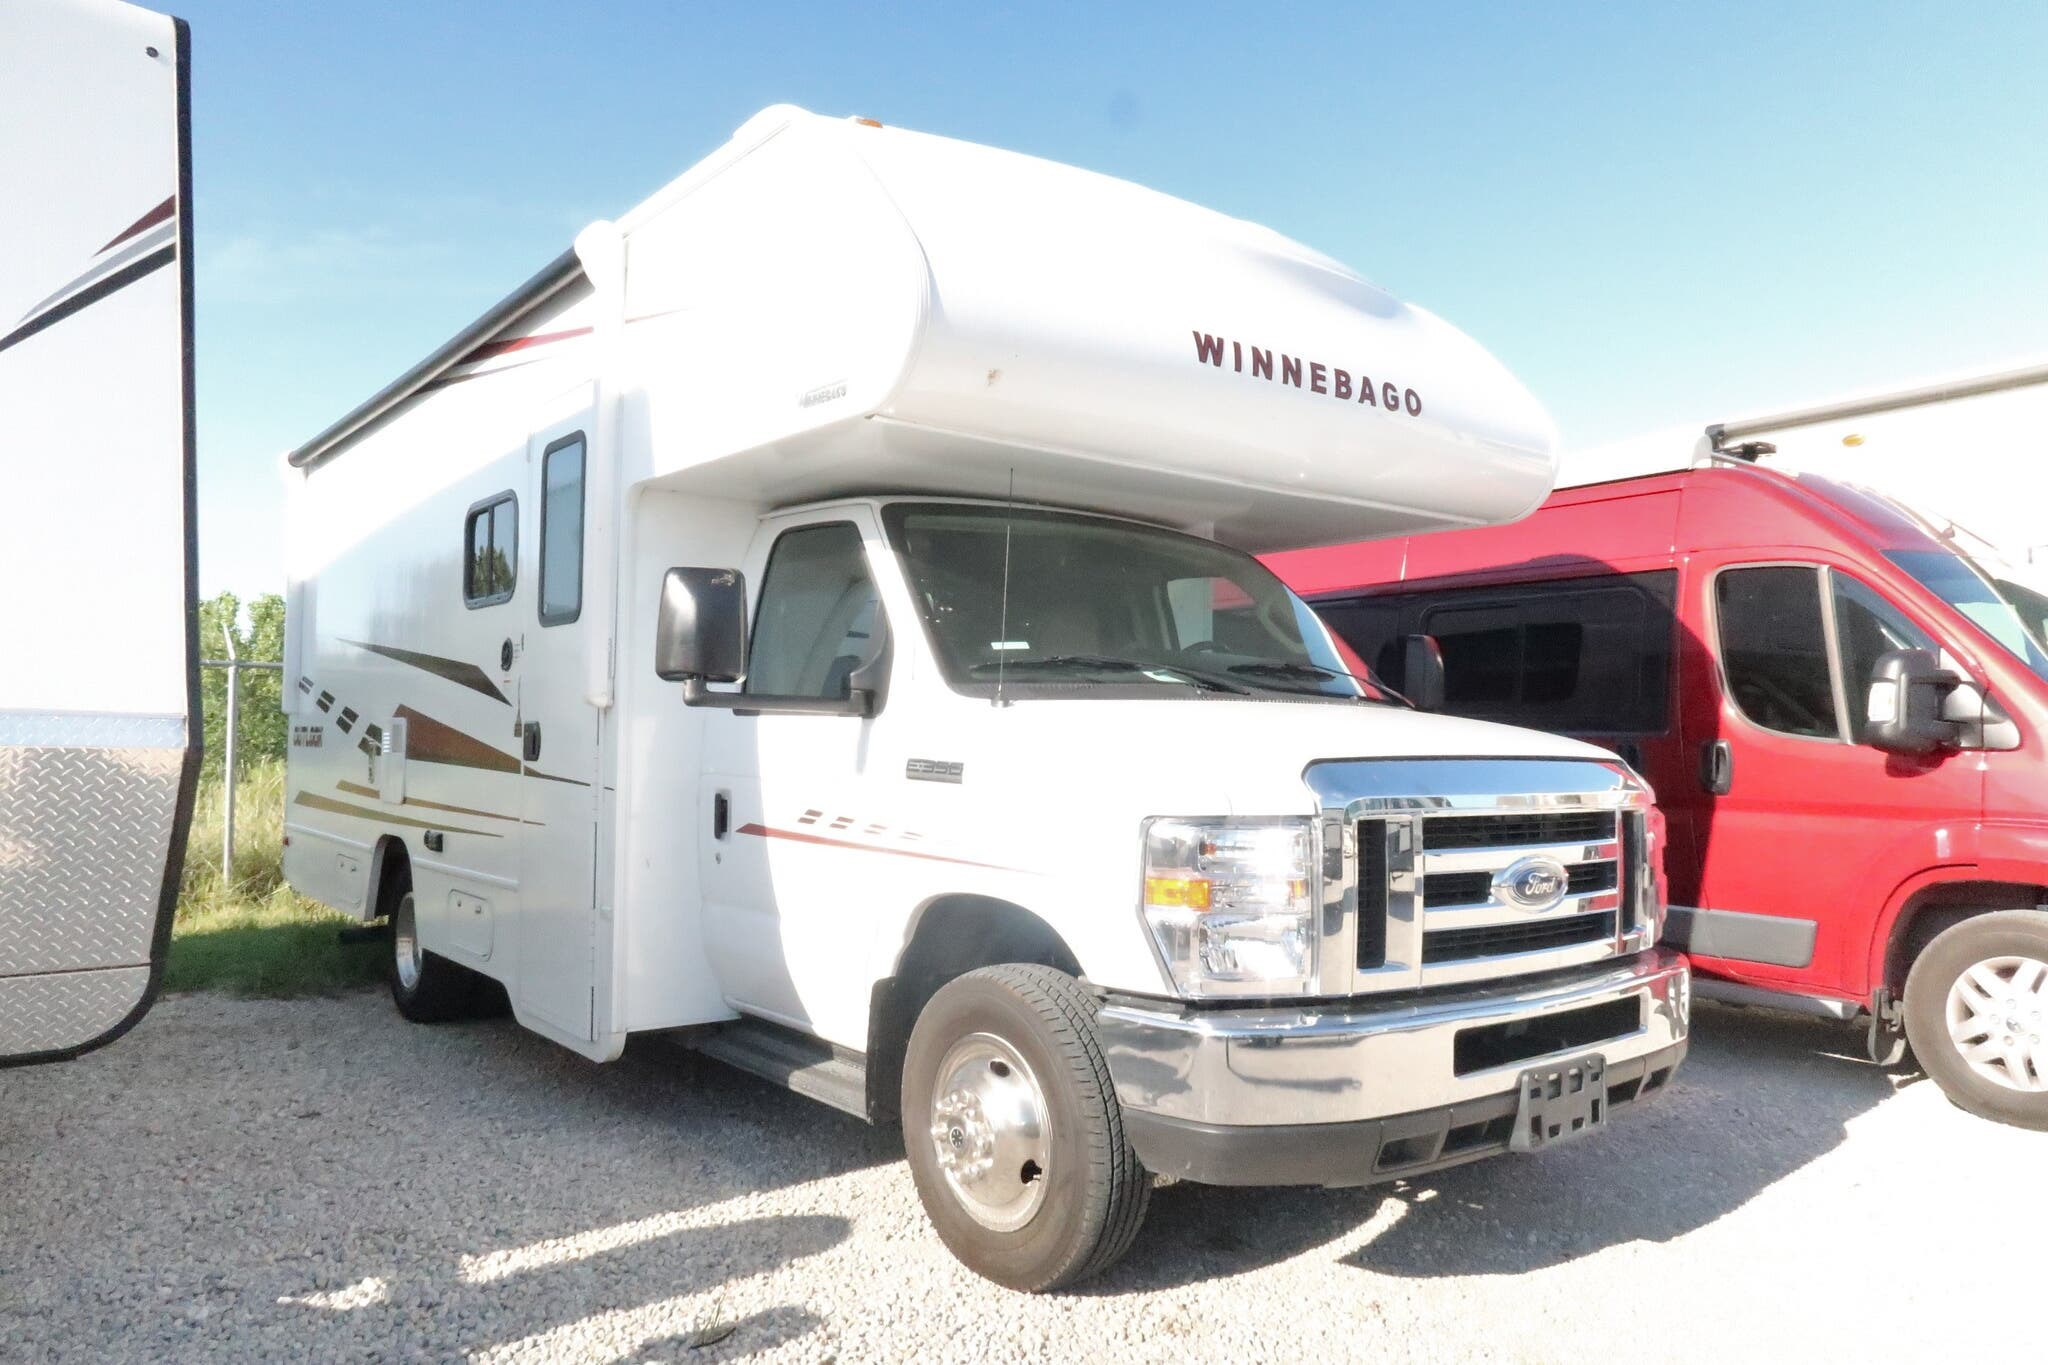 2019 Winnebago RV Outlook 22C for Sale in Fort Worth, TX 76140 | A91038